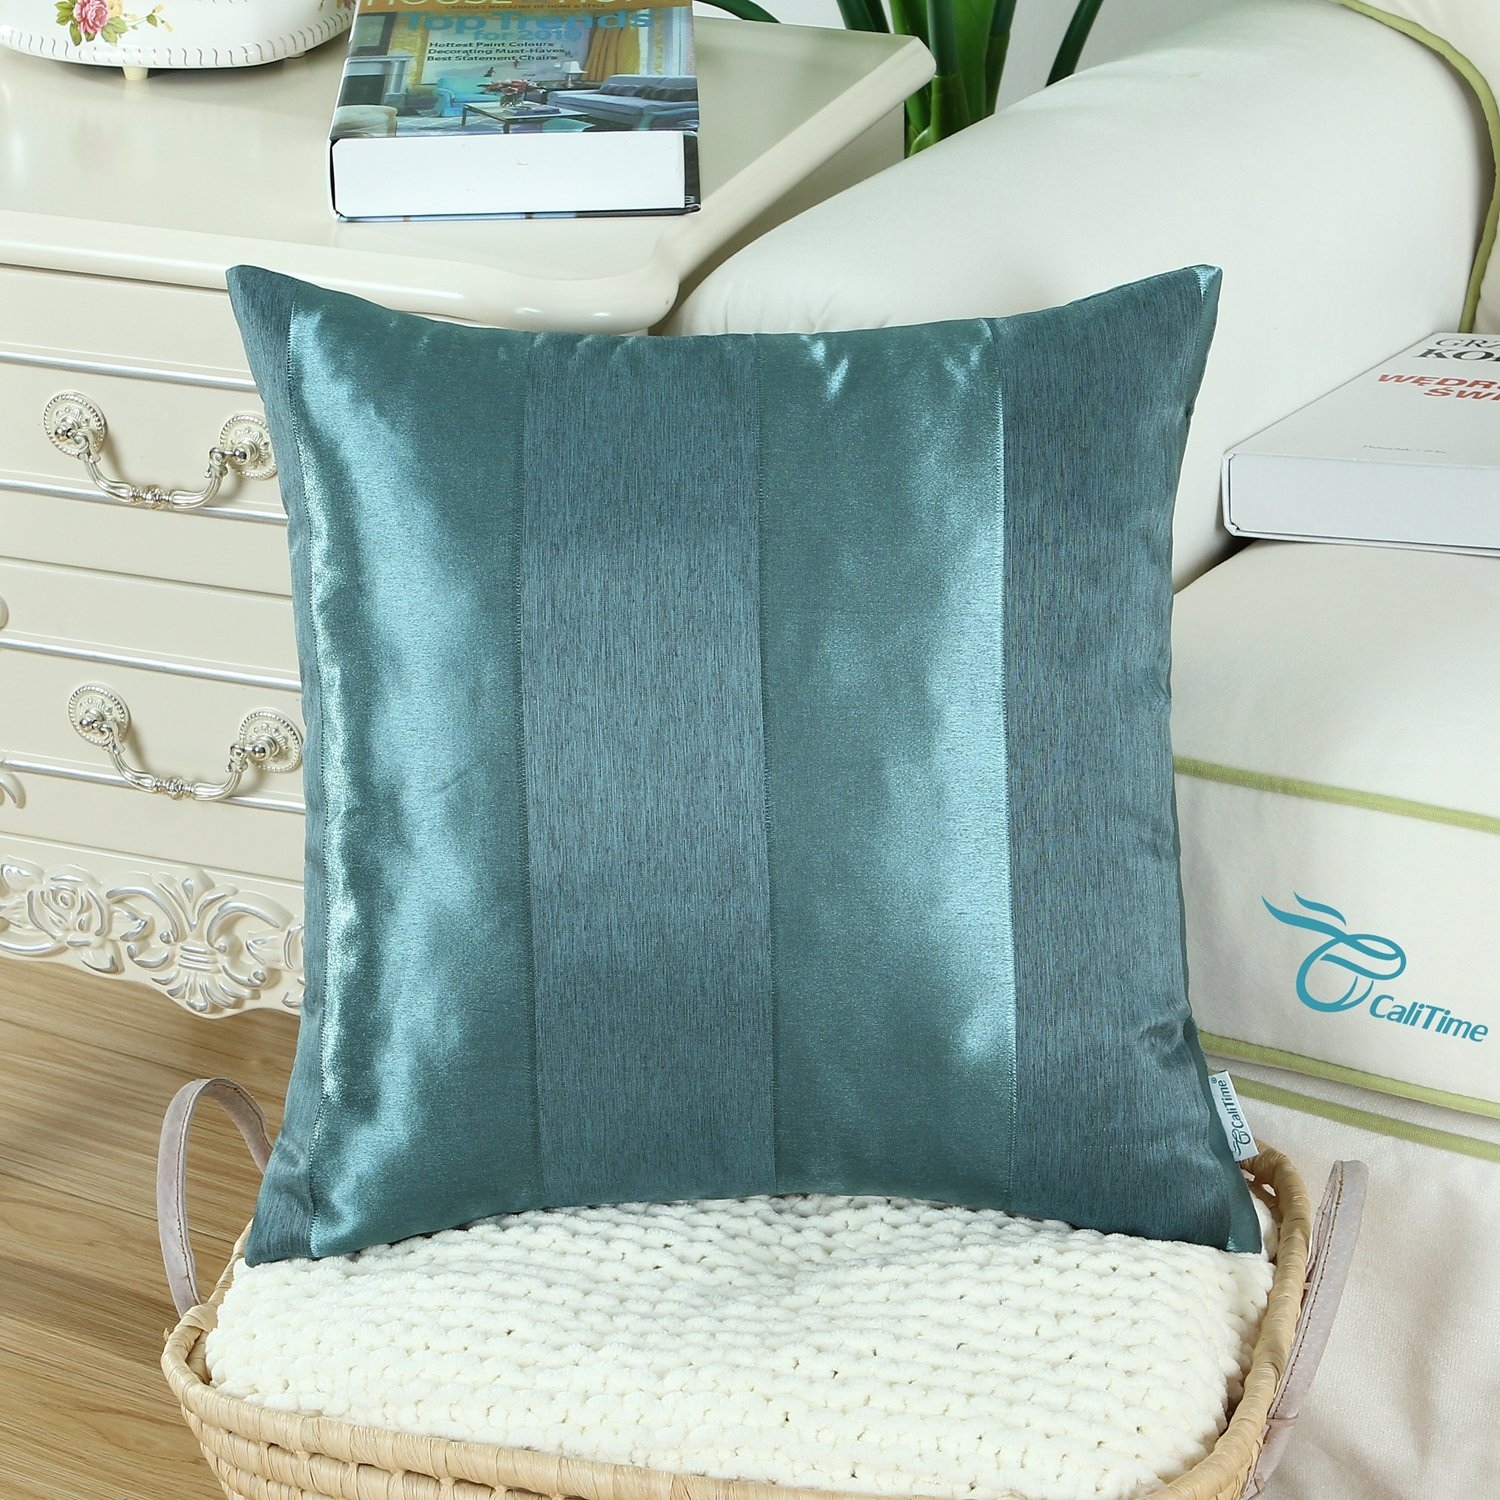 CaliTime Pack of 2 Cushion Covers Throw Pillow Cases Shells for Couch Sofa Home Decoration Modern Shining /& Dull Contrast Striped 18 X 18 Inches Light Blue